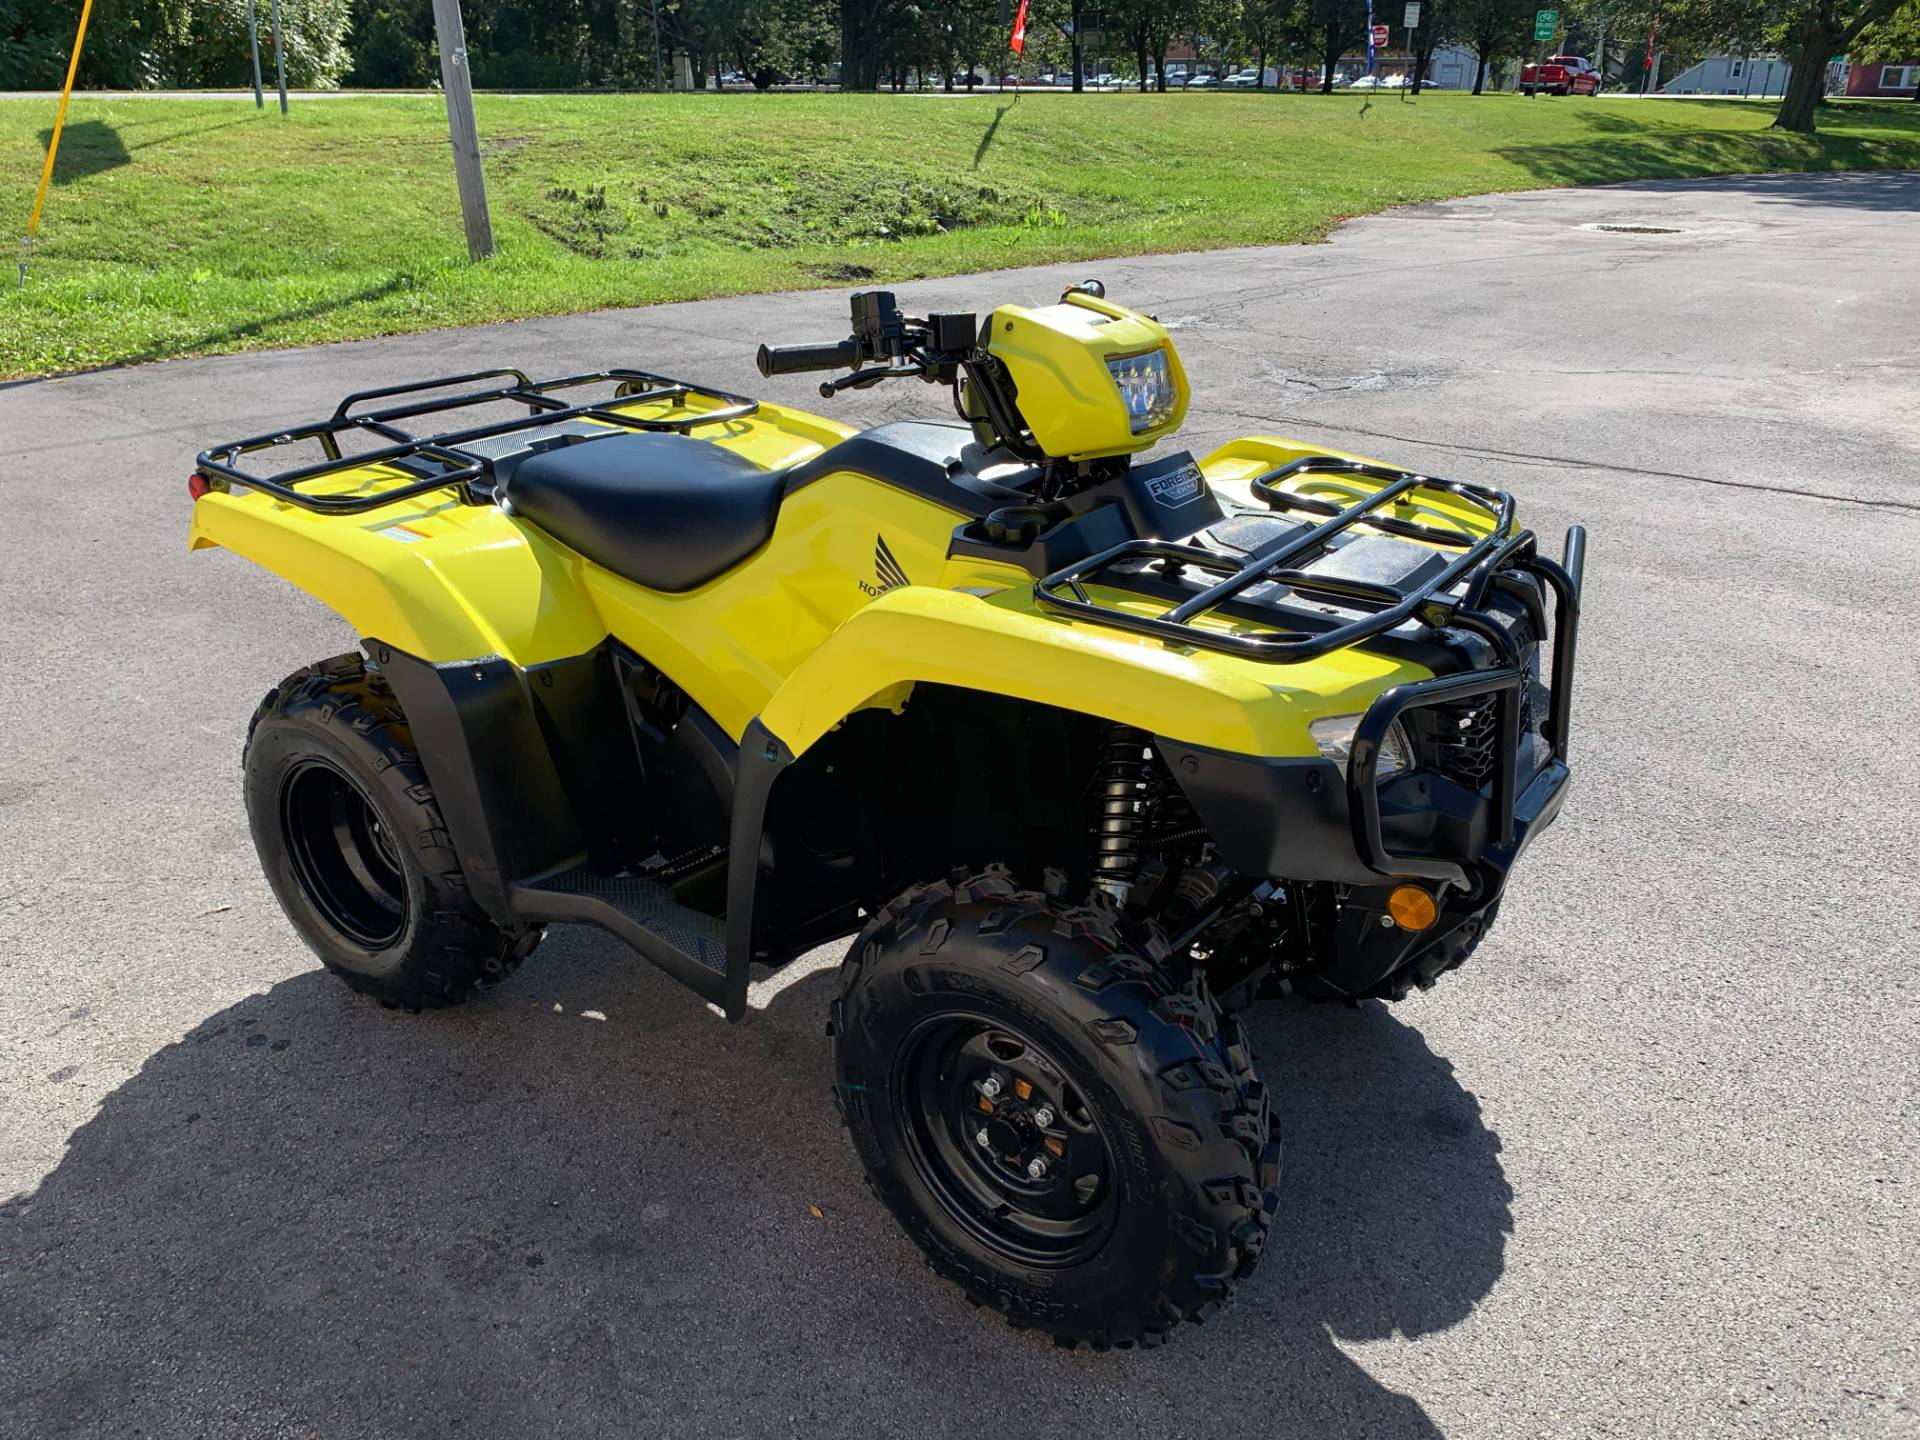 2019 Honda FourTrax Foreman 4x4 in Herkimer, New York - Photo 5